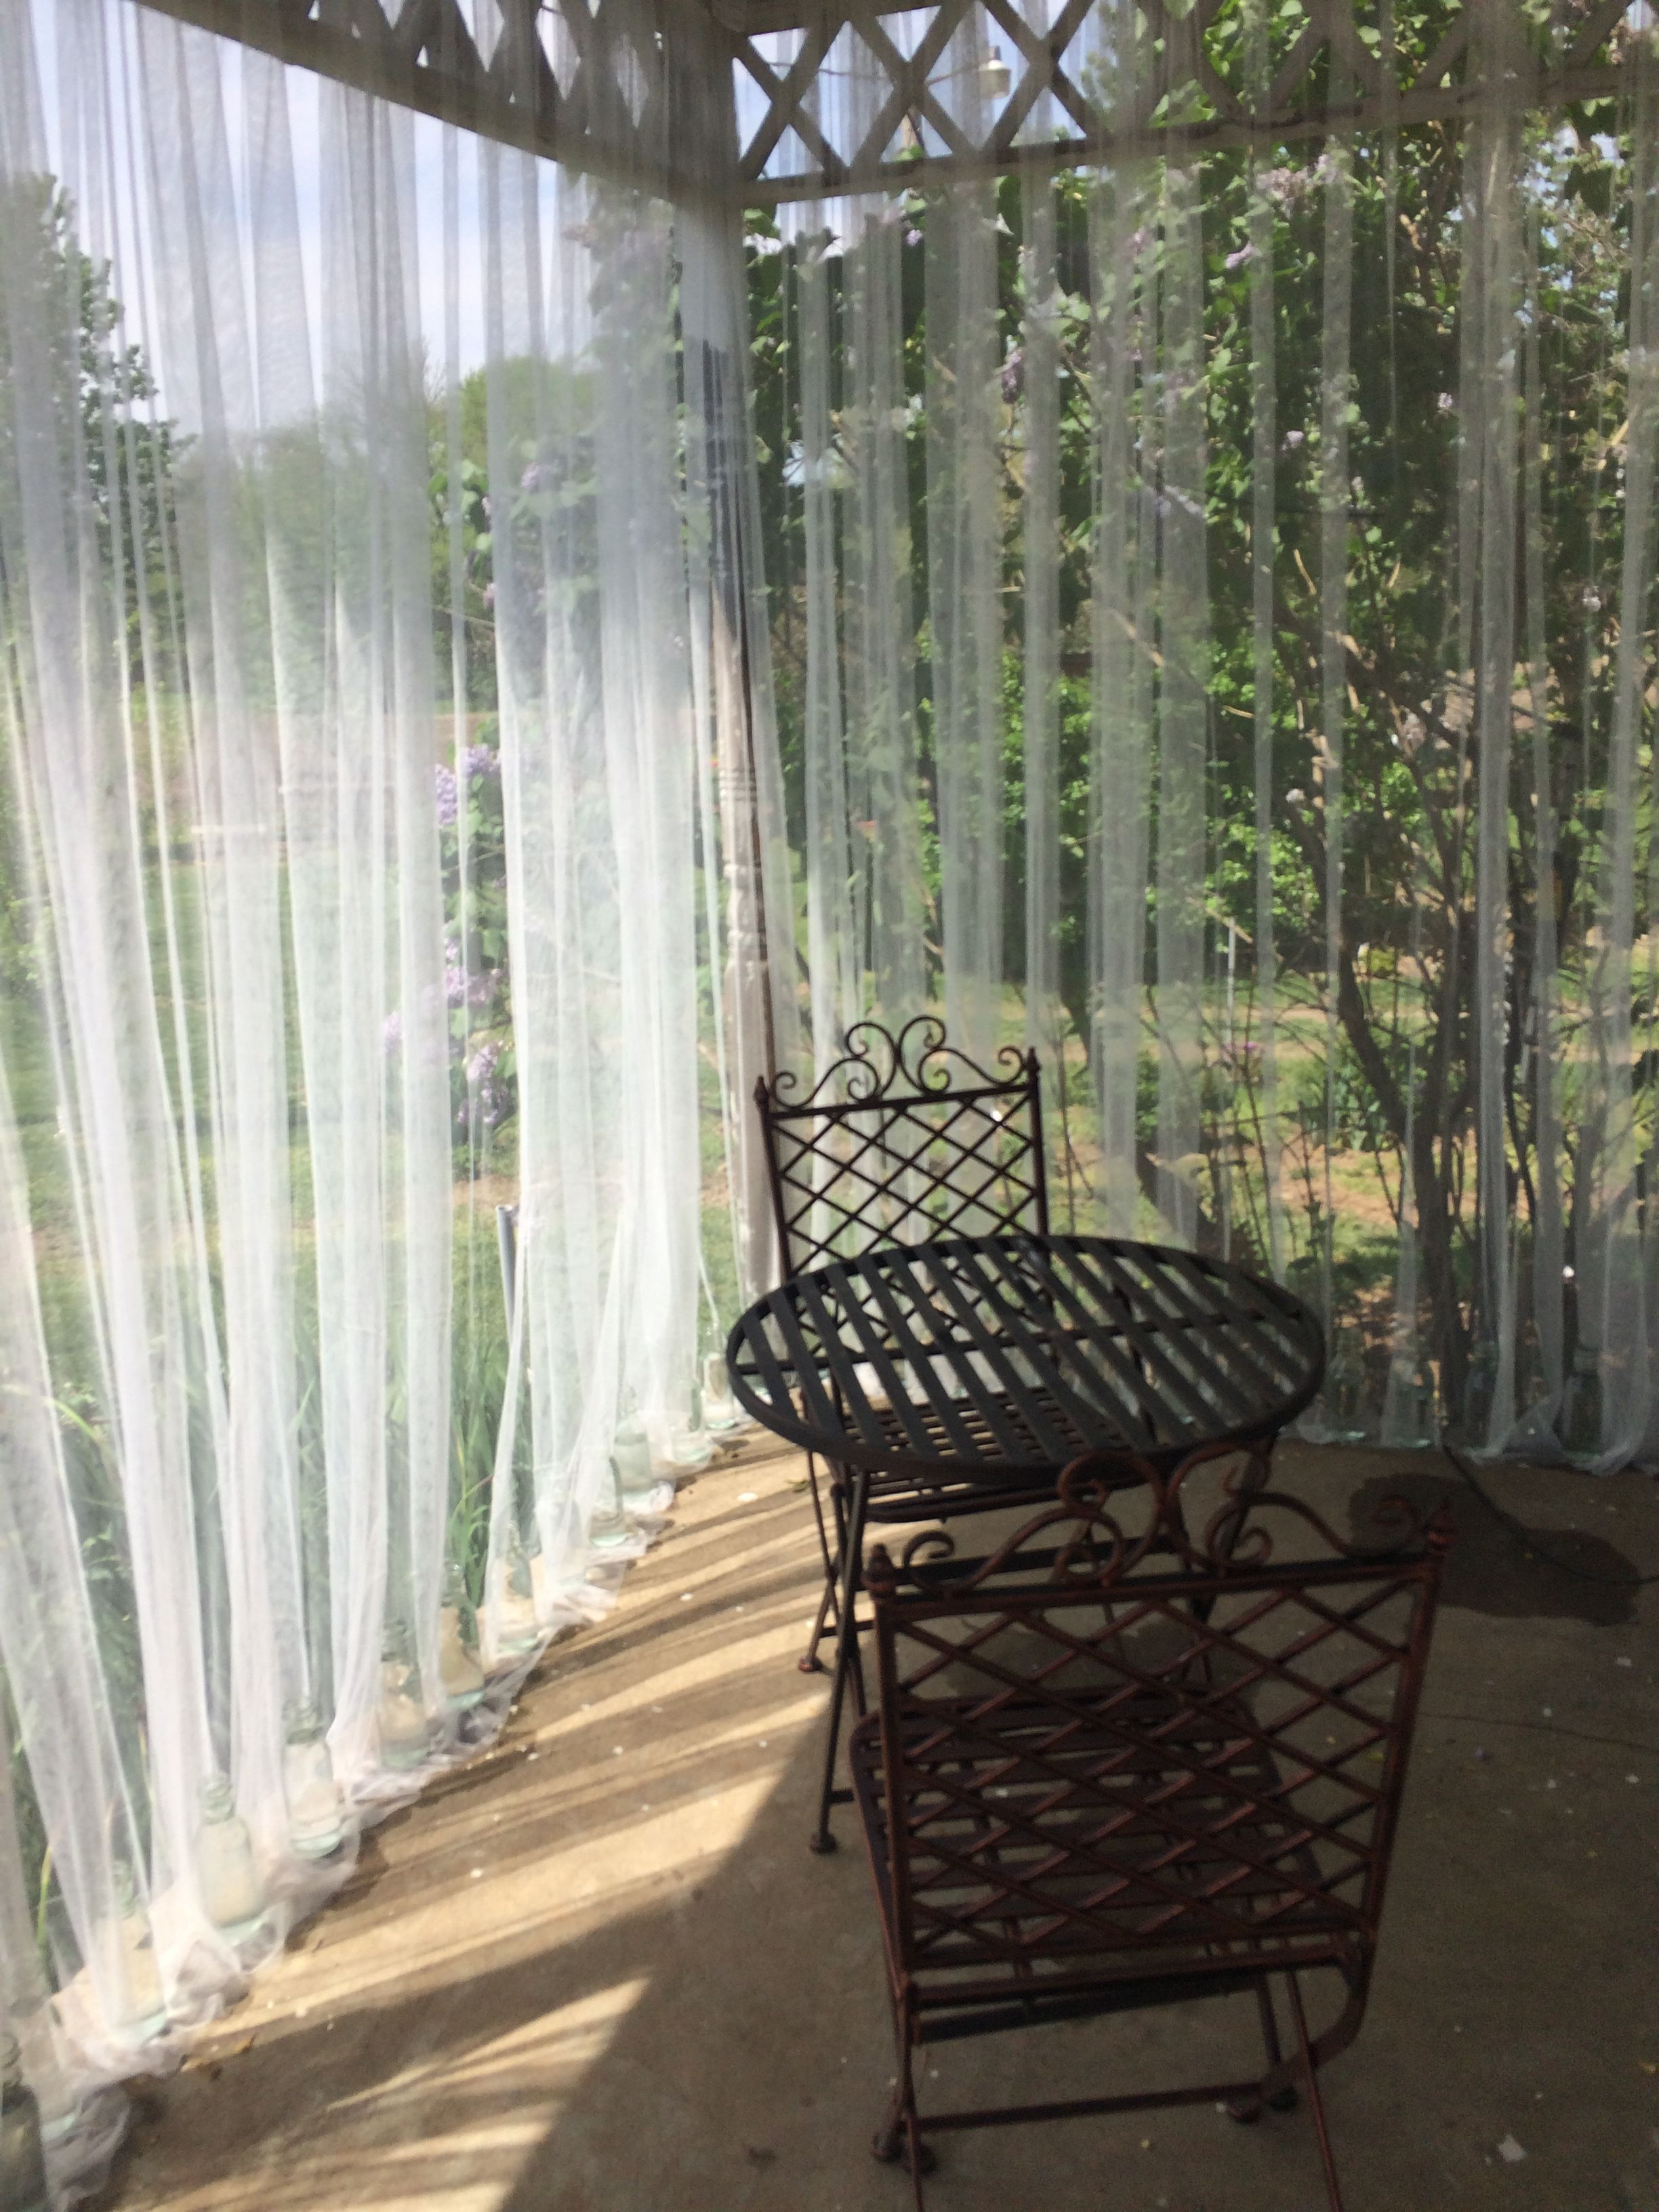 Outdoor Mesh Curtains For Bug Barrier Mosquito Netting Patio Outdoor Curtains Patio Curtains